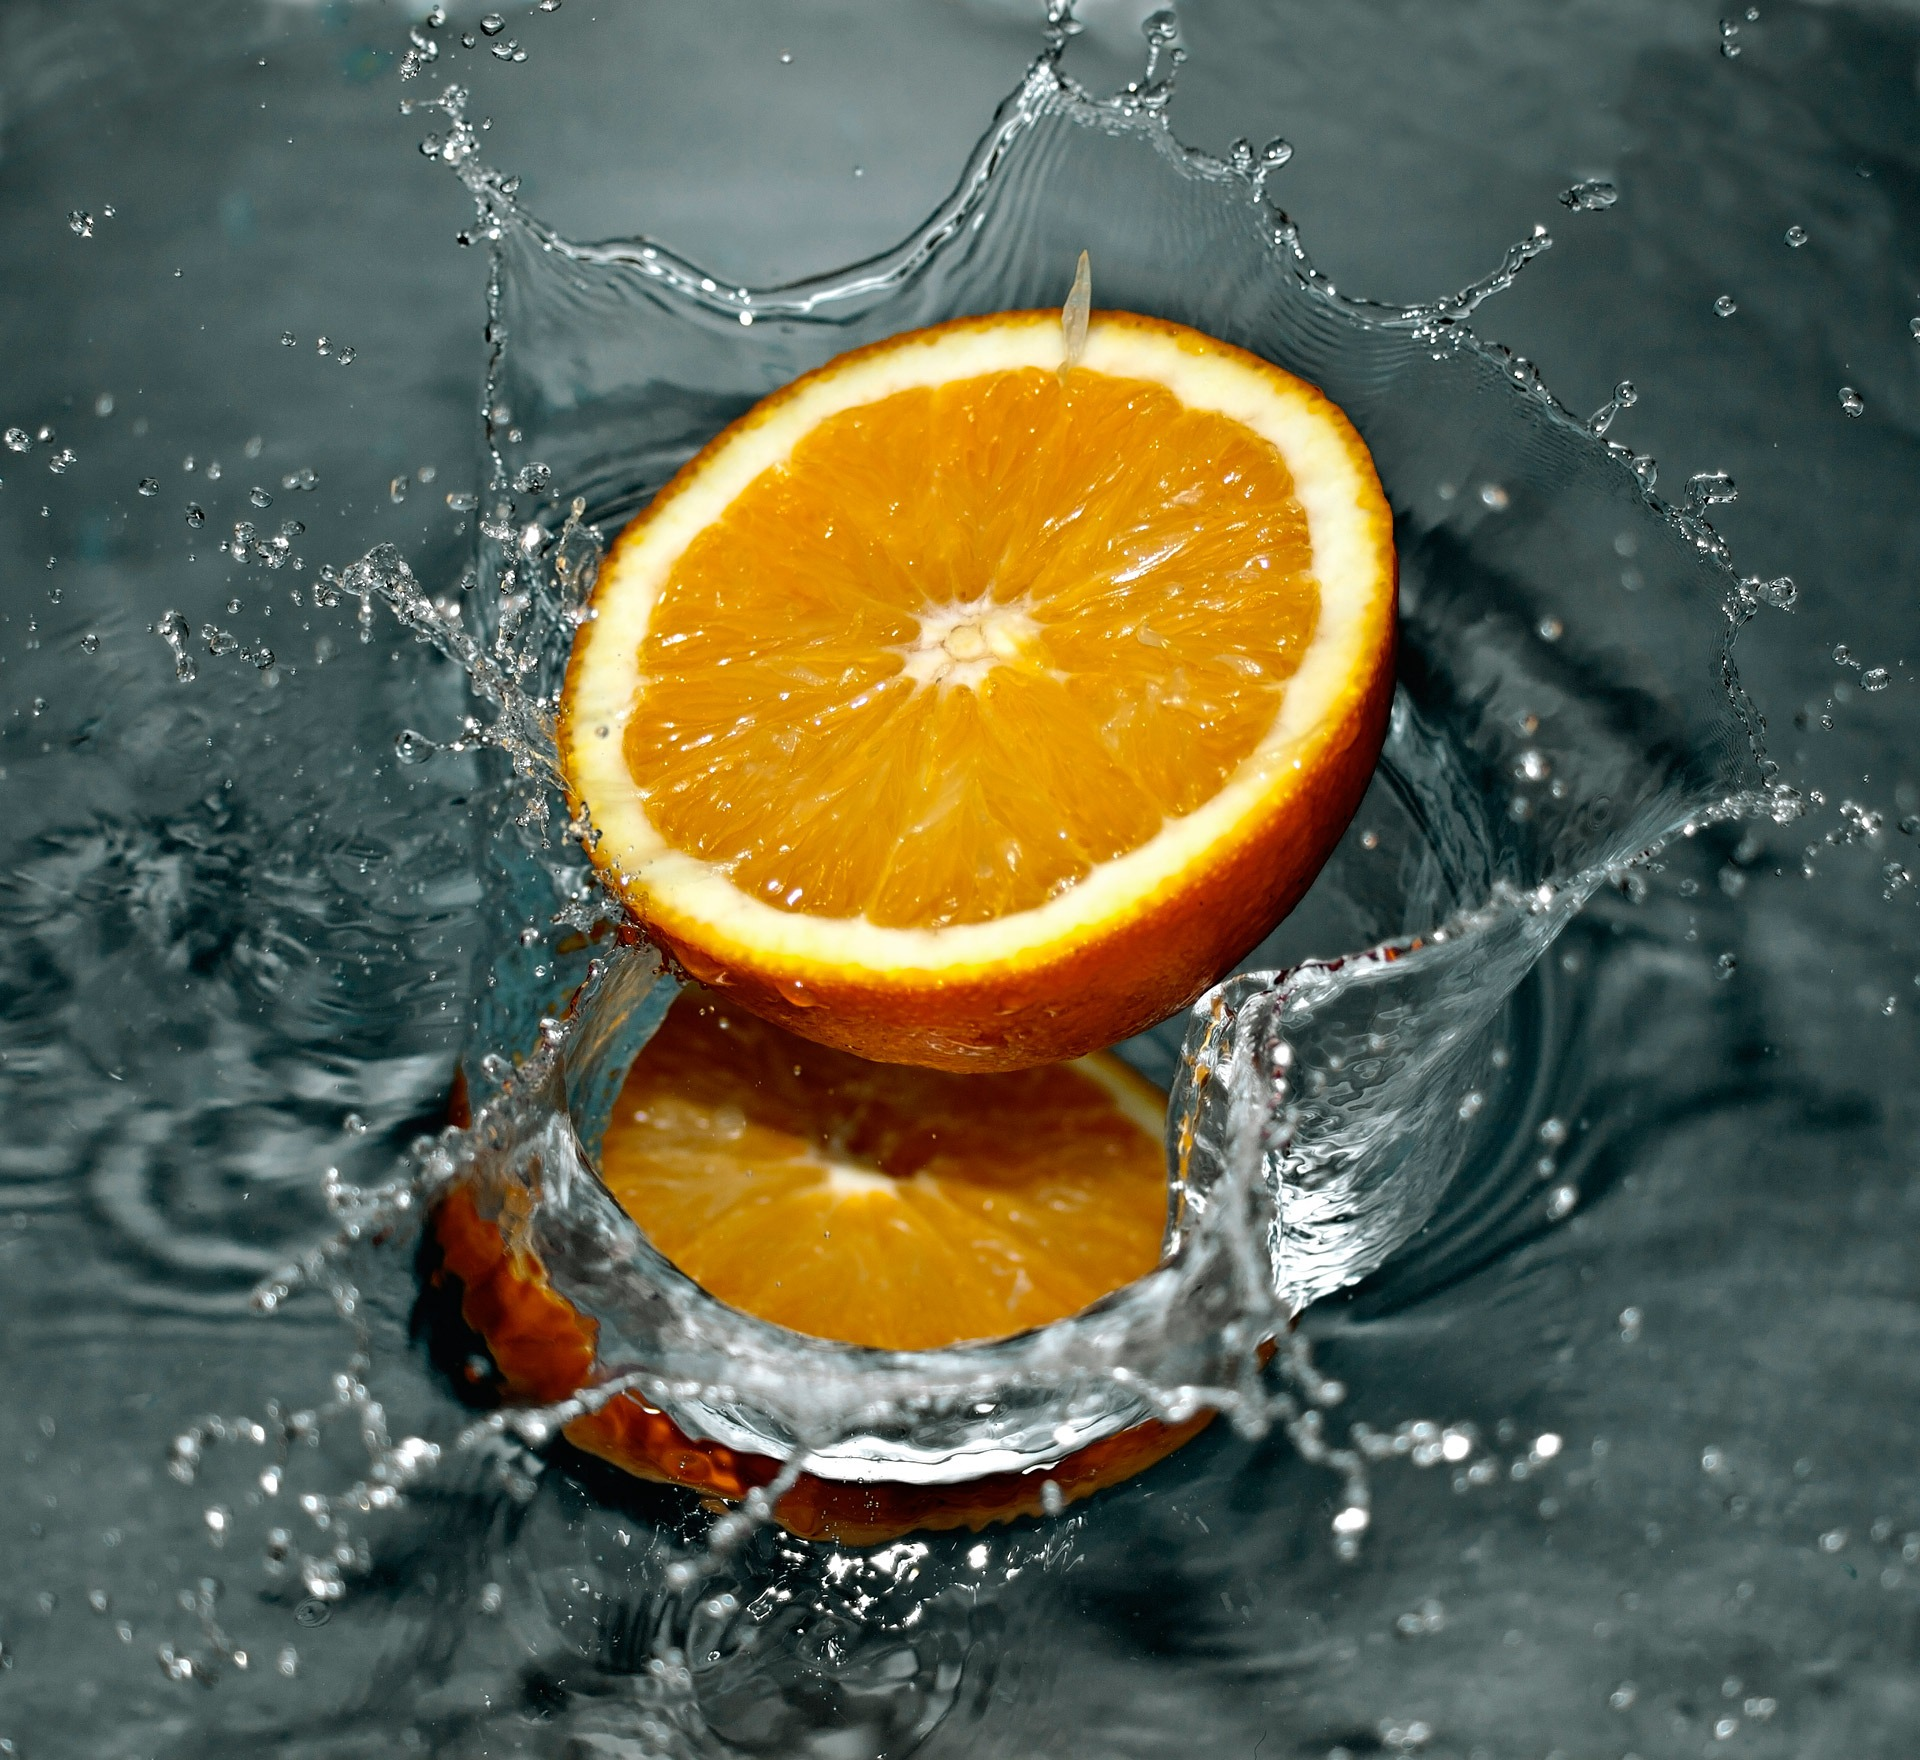 The Chinese have associated the peel with luck and good fortune, and it lends itself well to prosperity powders and incenses.  Add dried orange peels to a bath to attract love and companionship.  -- Orange Peel Magical Properties and Uses